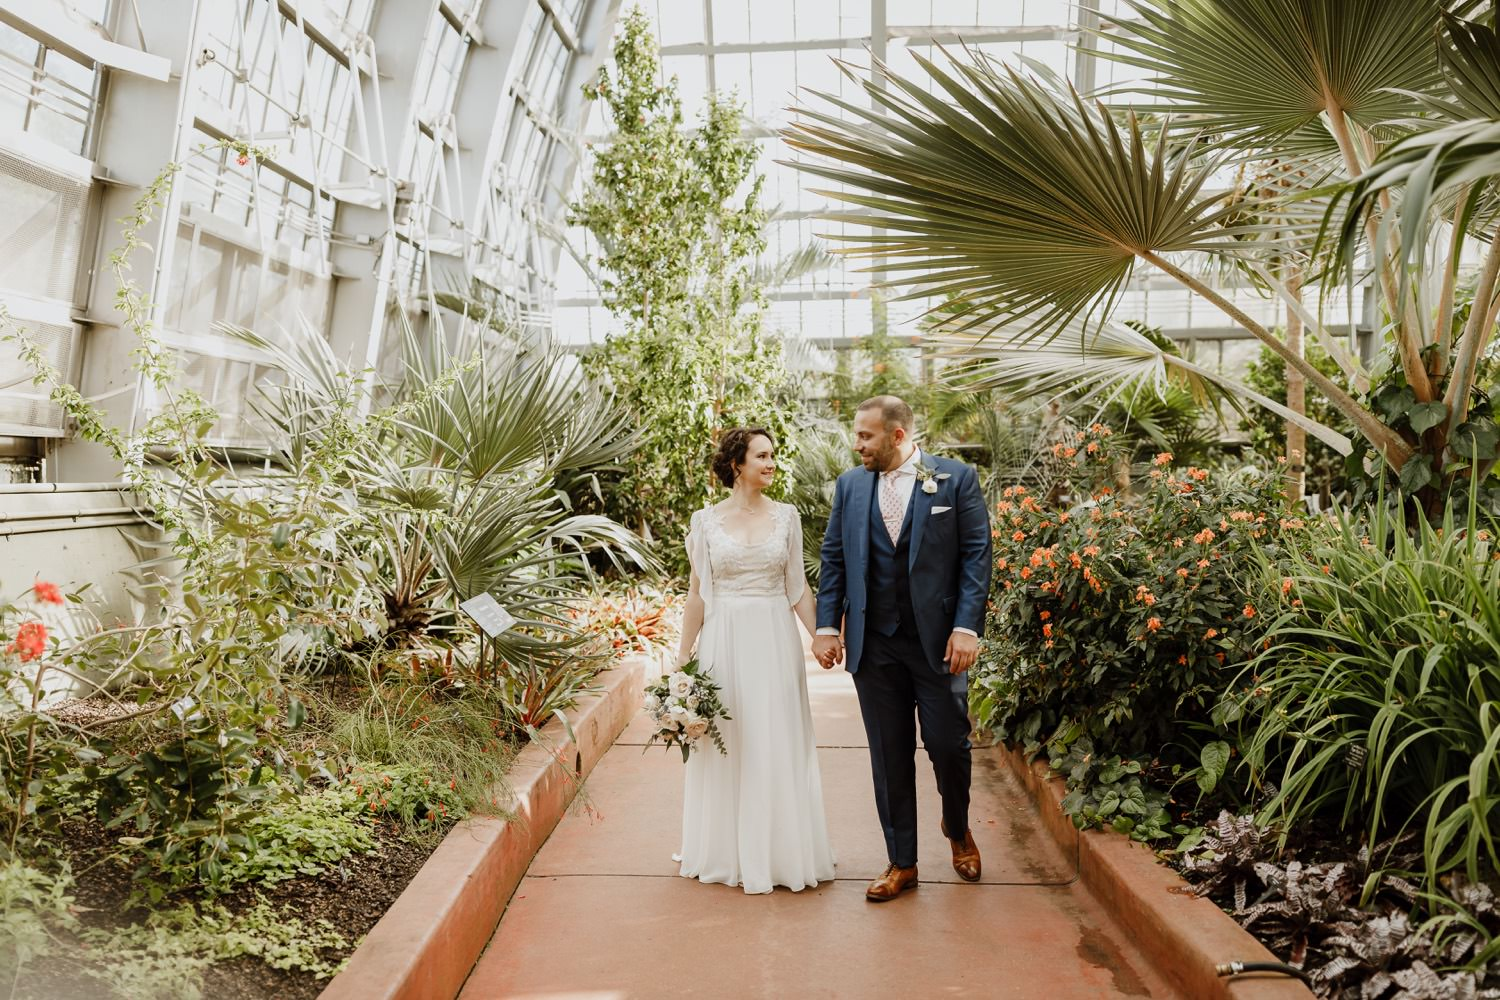 Portrait among the plants of the bride and groom at Garfield Park Conservatory. Taken on the wedding day.